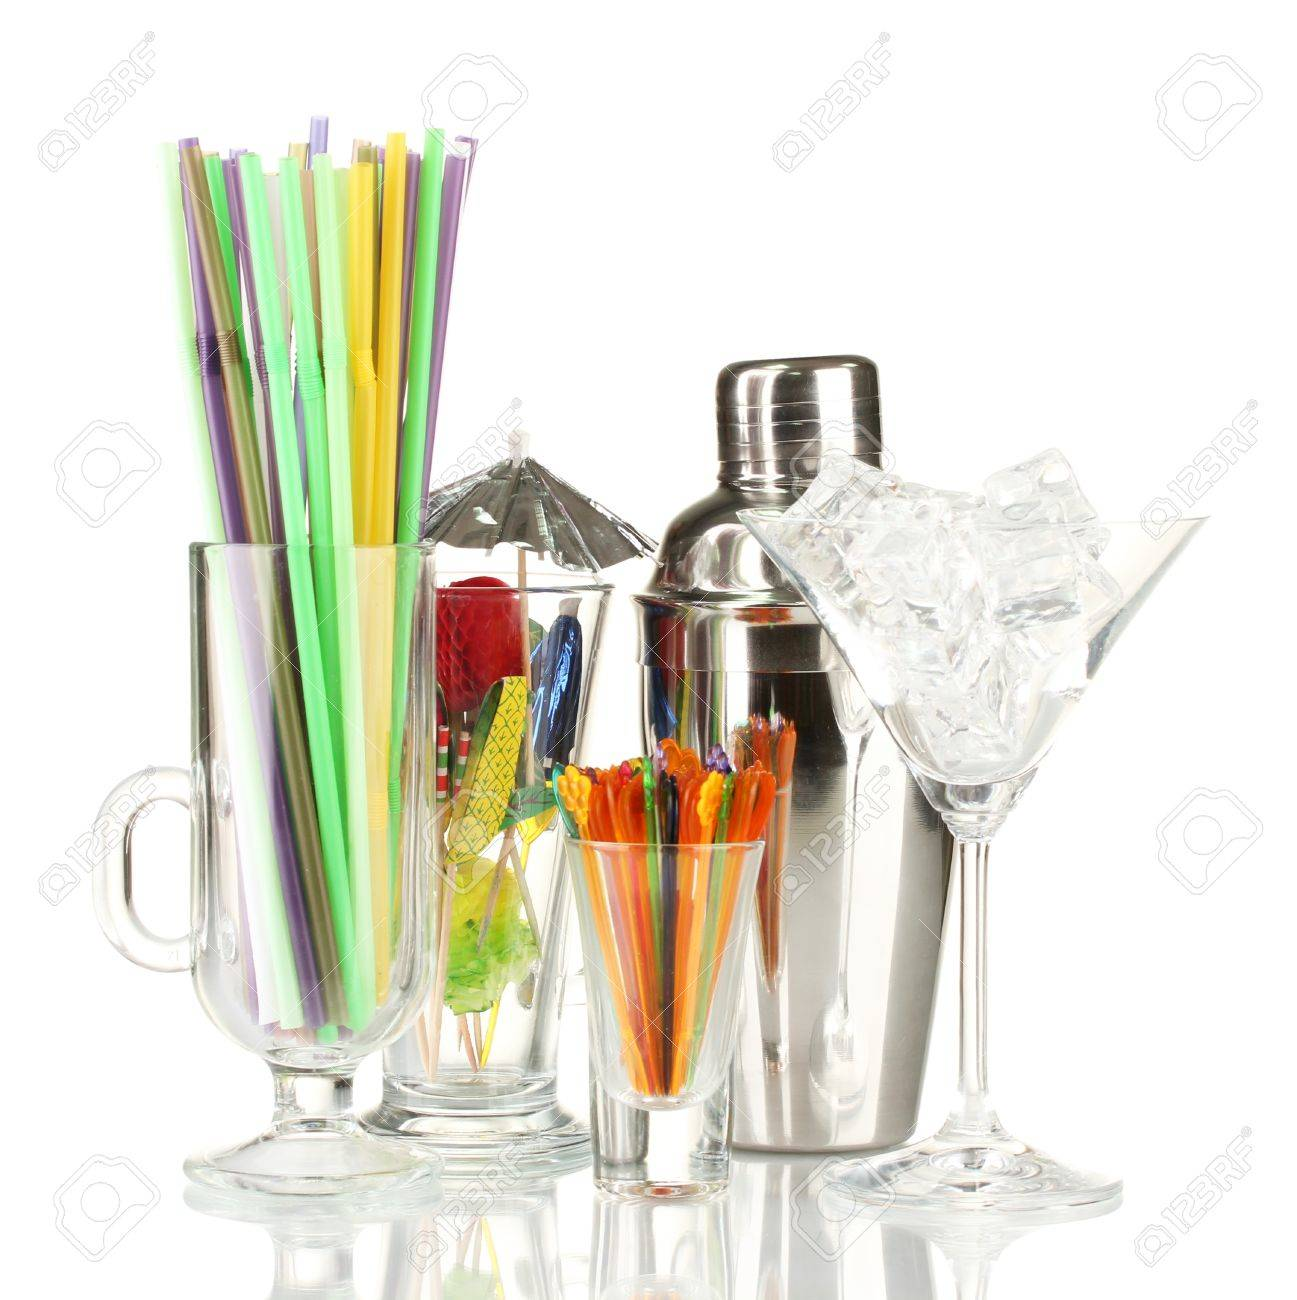 Cocktail shaker and  other bartender equipment isolated on white Stock Photo - 17349311